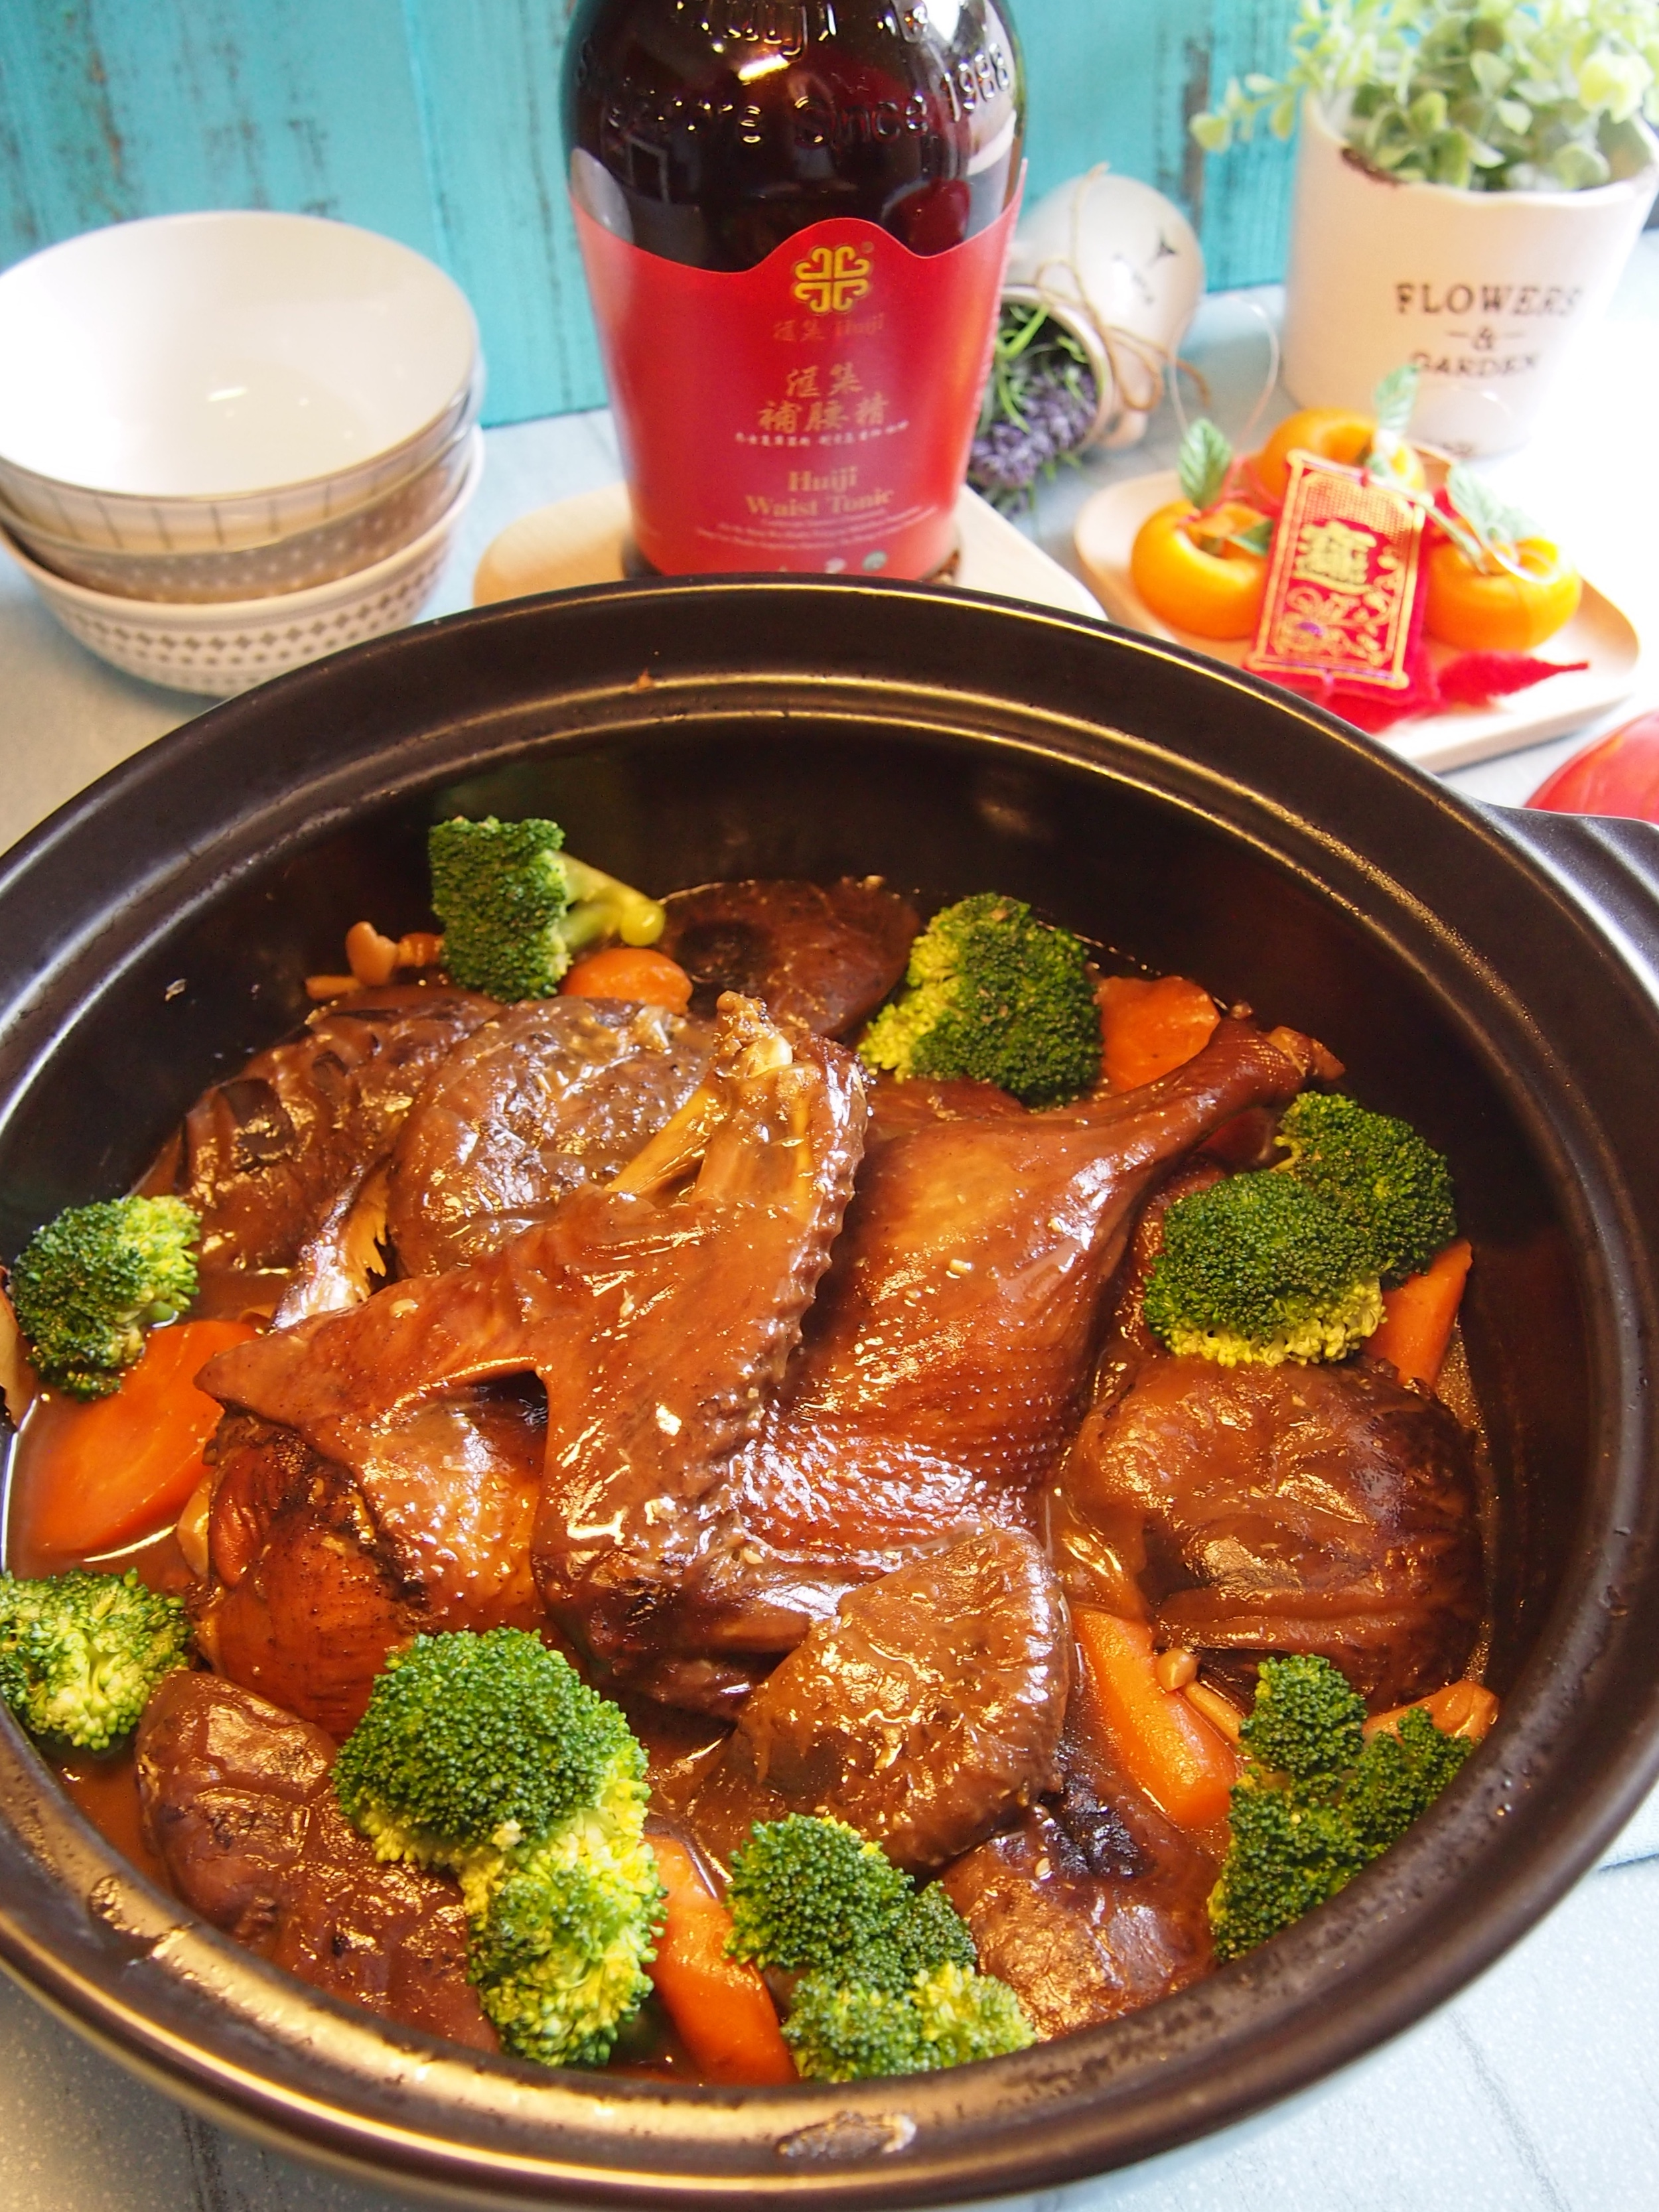 CNY Reunion Dinner Recipe: Prosperity Duck w/ Mushrooms in Herbal Sauce 药材蘑菇发财鸭